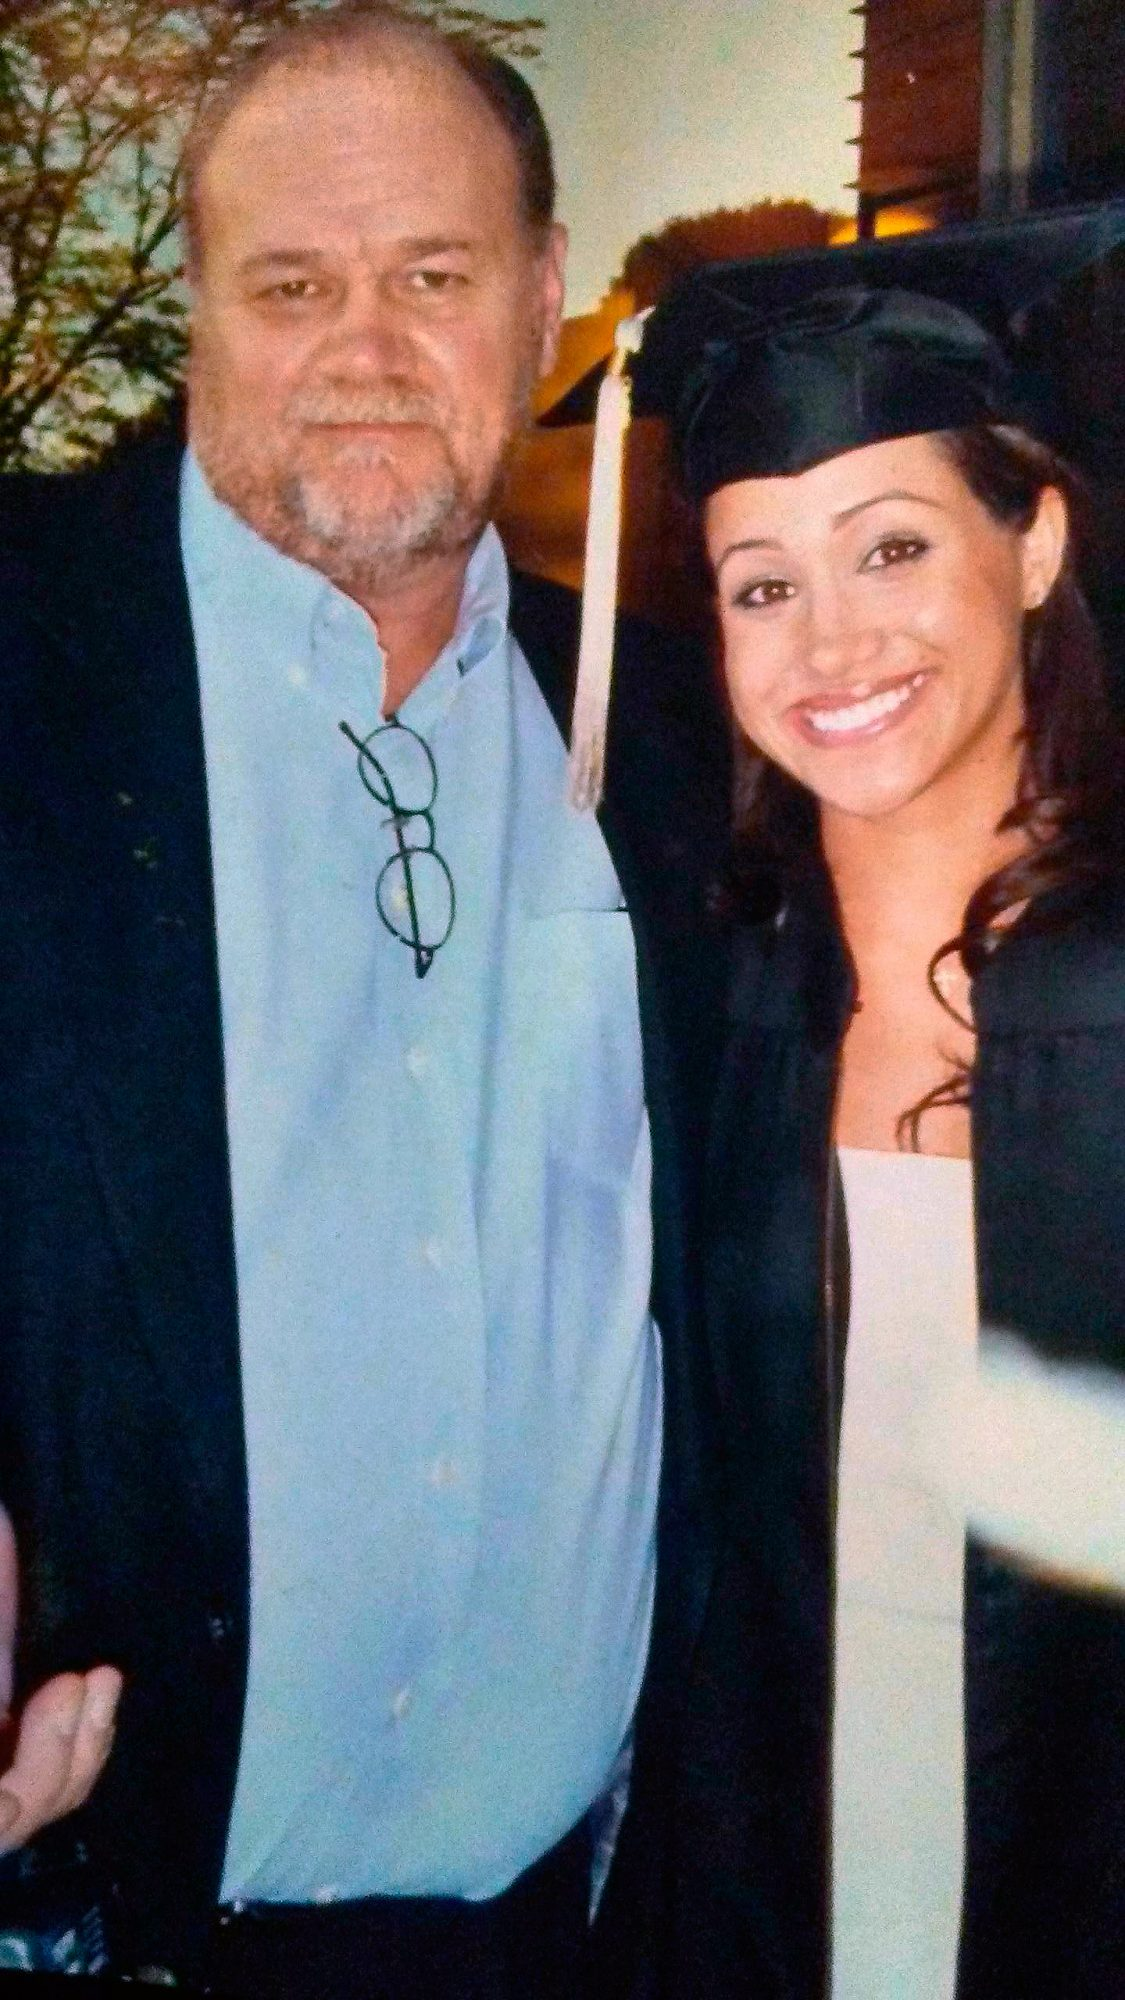 This exclusive collect photo shows a young Meghan Markle on her high school graduation day, accompanied by her father Thomas Markle Senior.